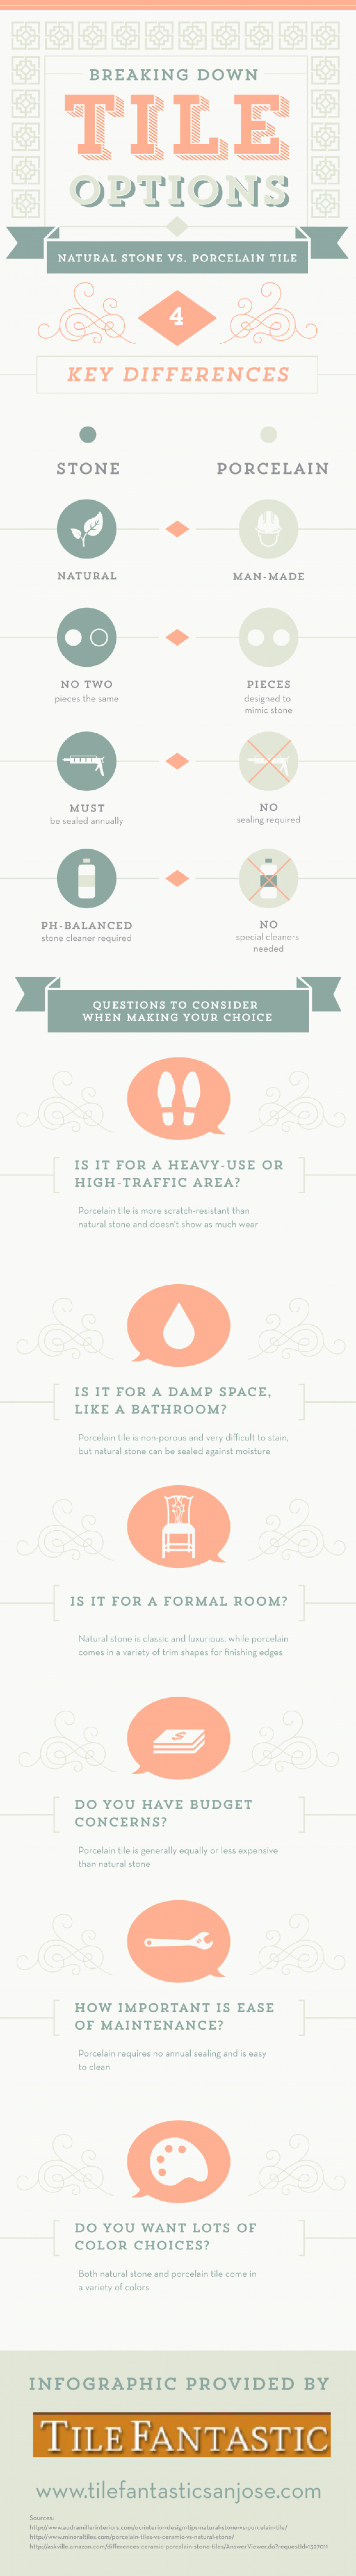 Breaking Down Tile Options: Natural Stone of Porcelain? Infographic